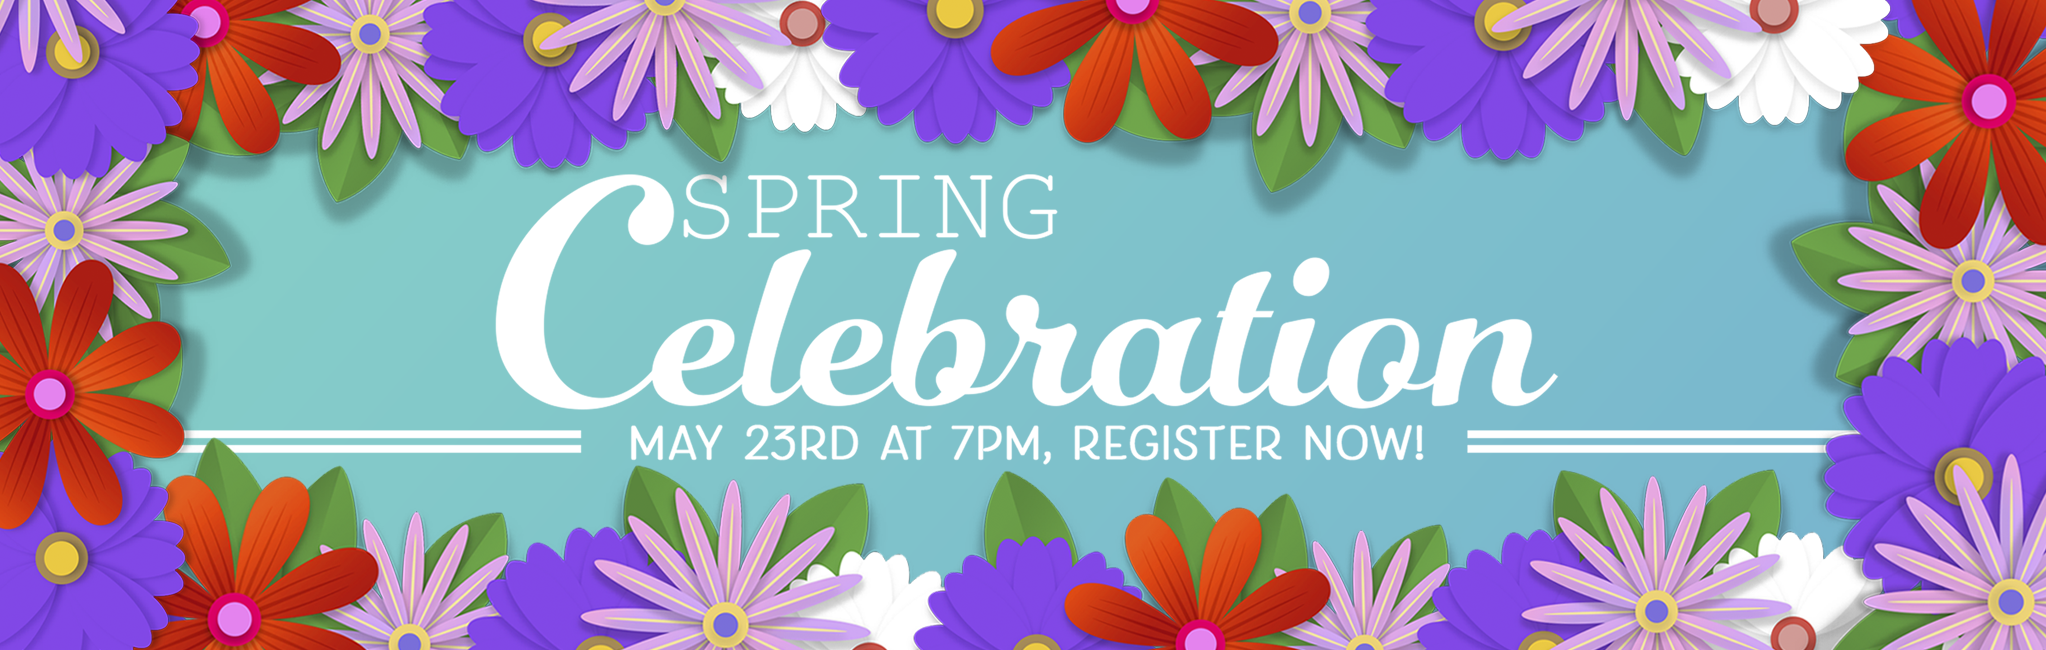 """<a href=""""https://kolemeth.shulcloud.com/springcelebration2021""""                                     target=""""_blank"""">                                                                 <span class=""""slider_title"""">                                     Spring Celebration                                </span>                                                                 </a>                                                                                                                                                                                      <a href=""""https://kolemeth.shulcloud.com/springcelebration2021"""" class=""""slider_link""""                             target=""""_blank"""">                             Click here to learn more!                            </a>"""